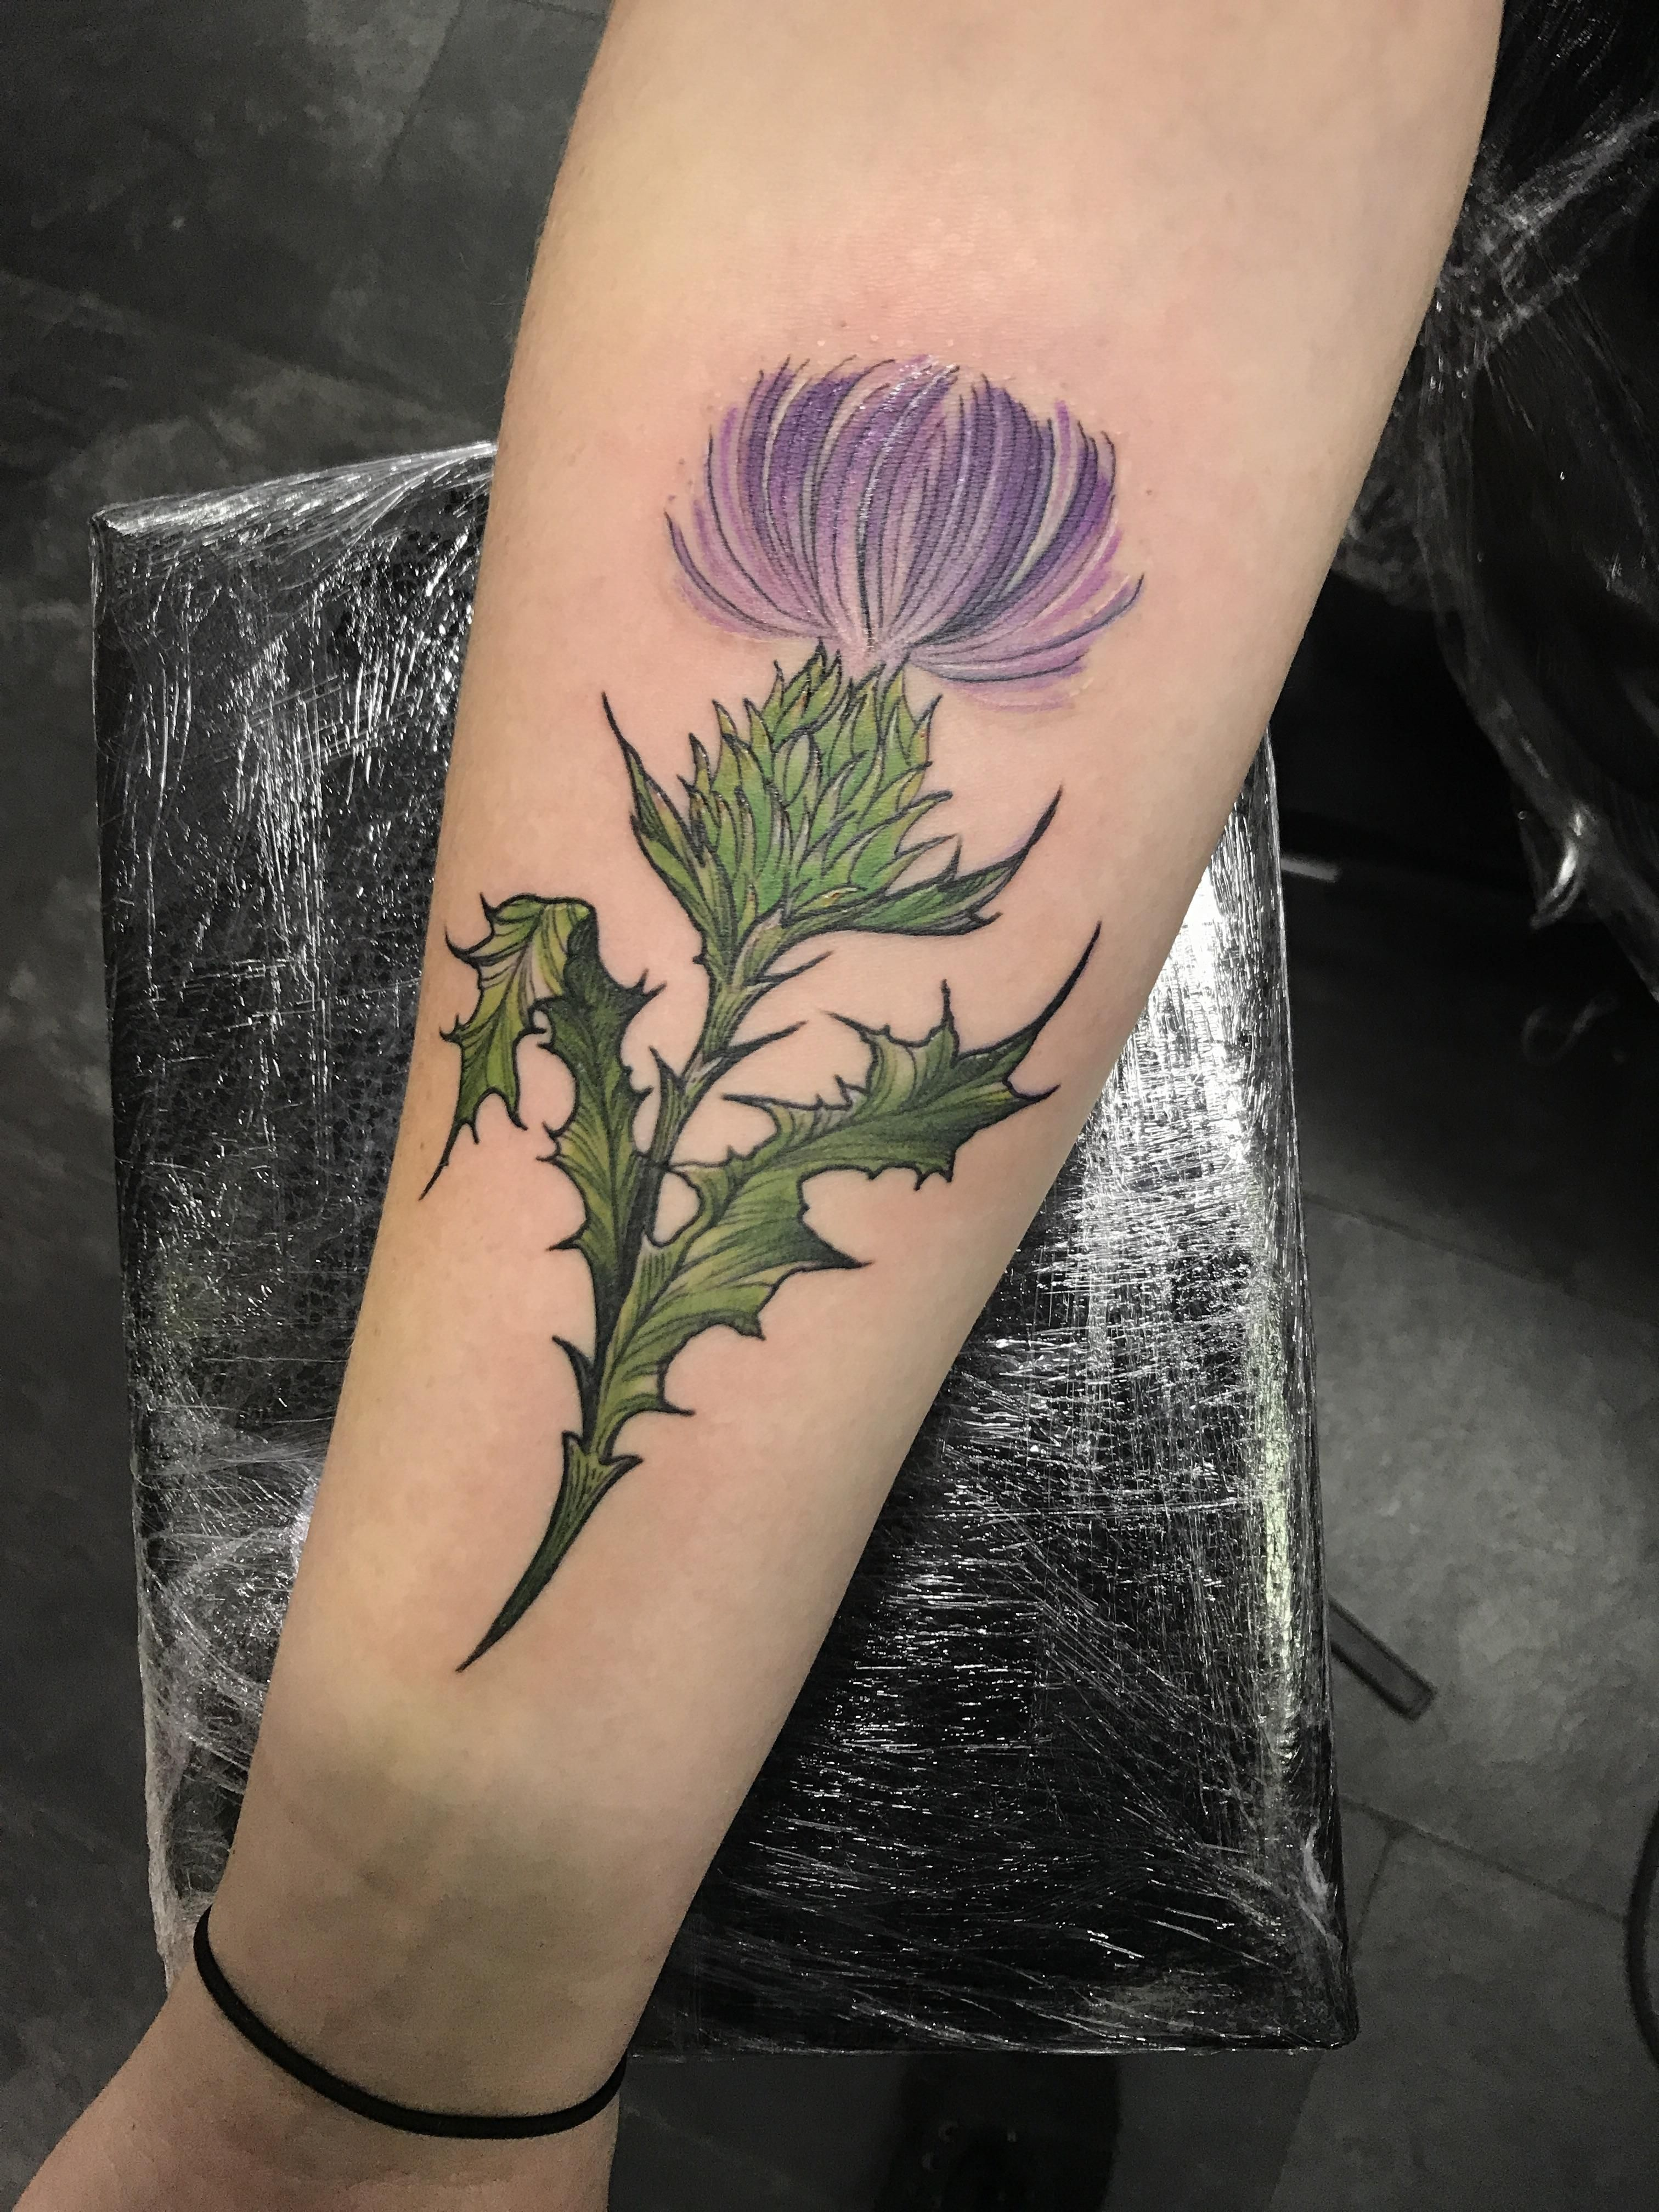 Milk thistle by Kerry Gentle at Red Hot and Blue tattoo